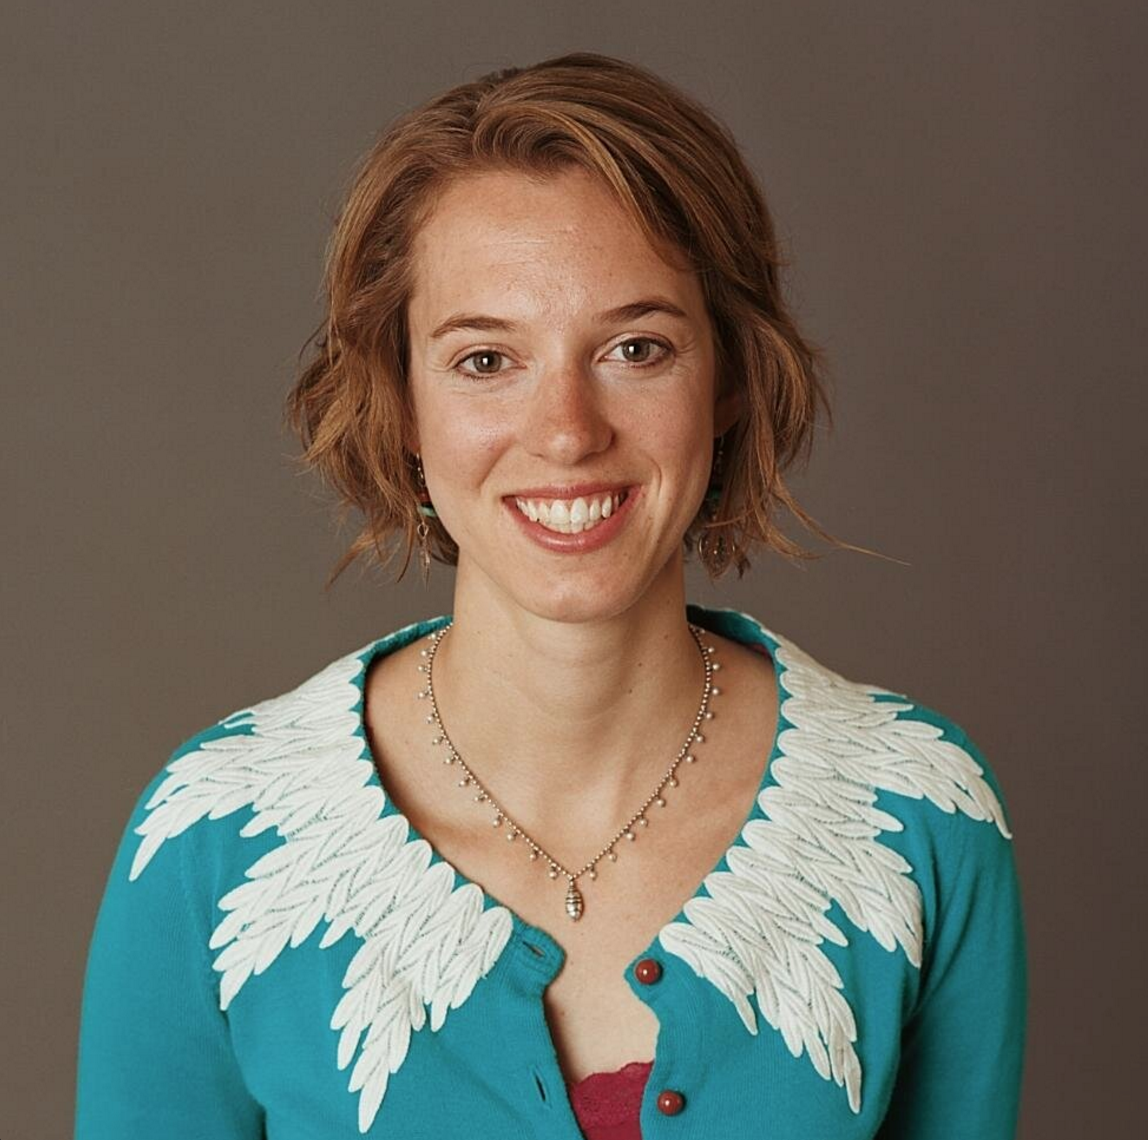 Brooke Toczylowski, AbD/Oakland Fellows Coordinator